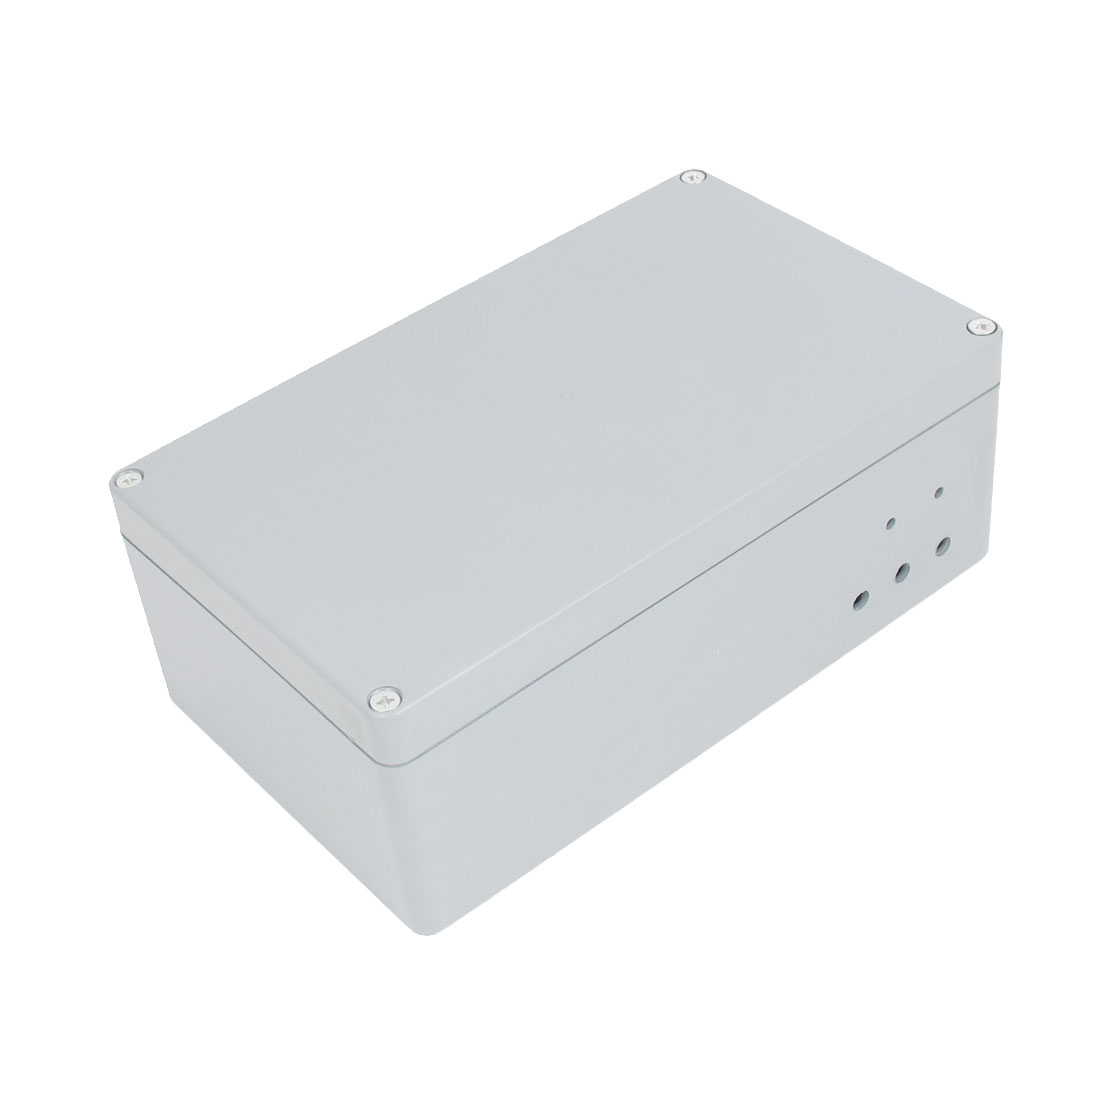 Gray Plastic Water Resistant Project Electronic Enclosure DIY Junction Box Case 198mmx120mmx75mm